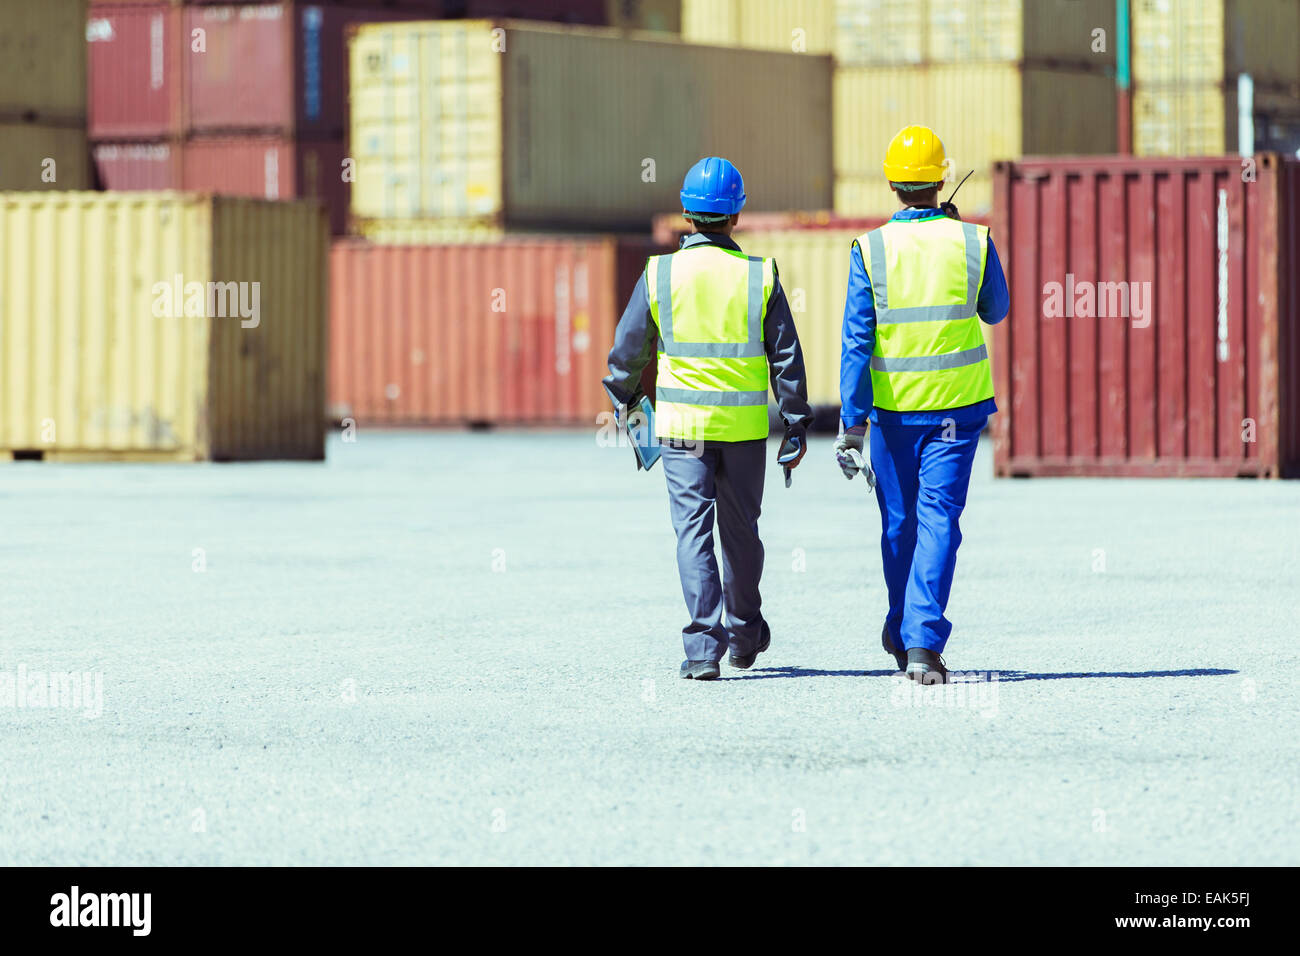 Workers walking near cargo containers - Stock Image